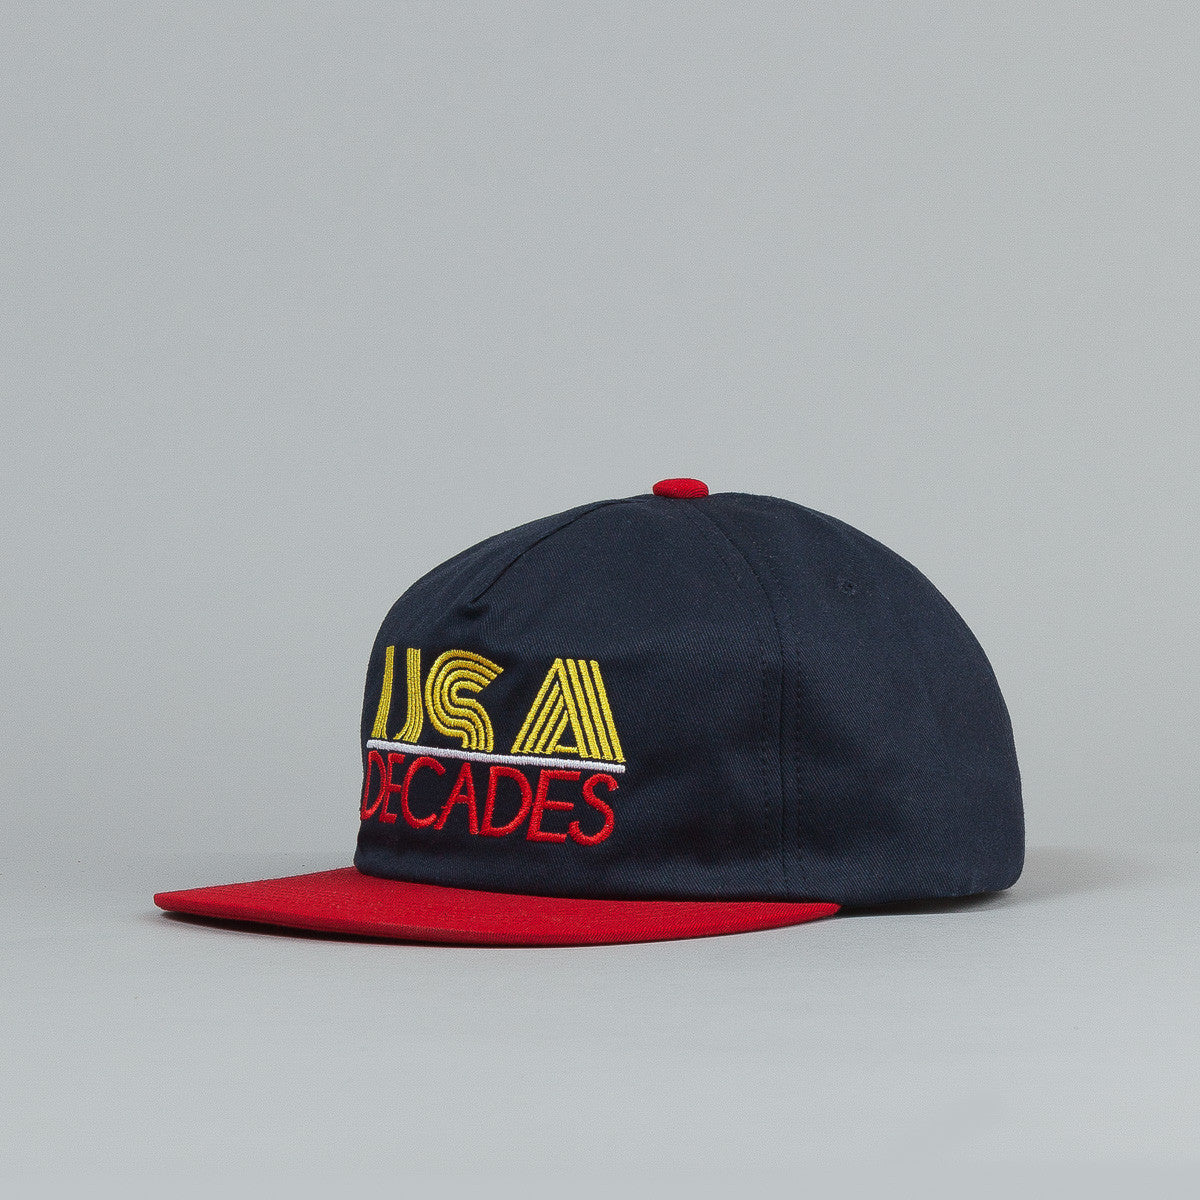 The Decades '76 Team USA Snapback Cap